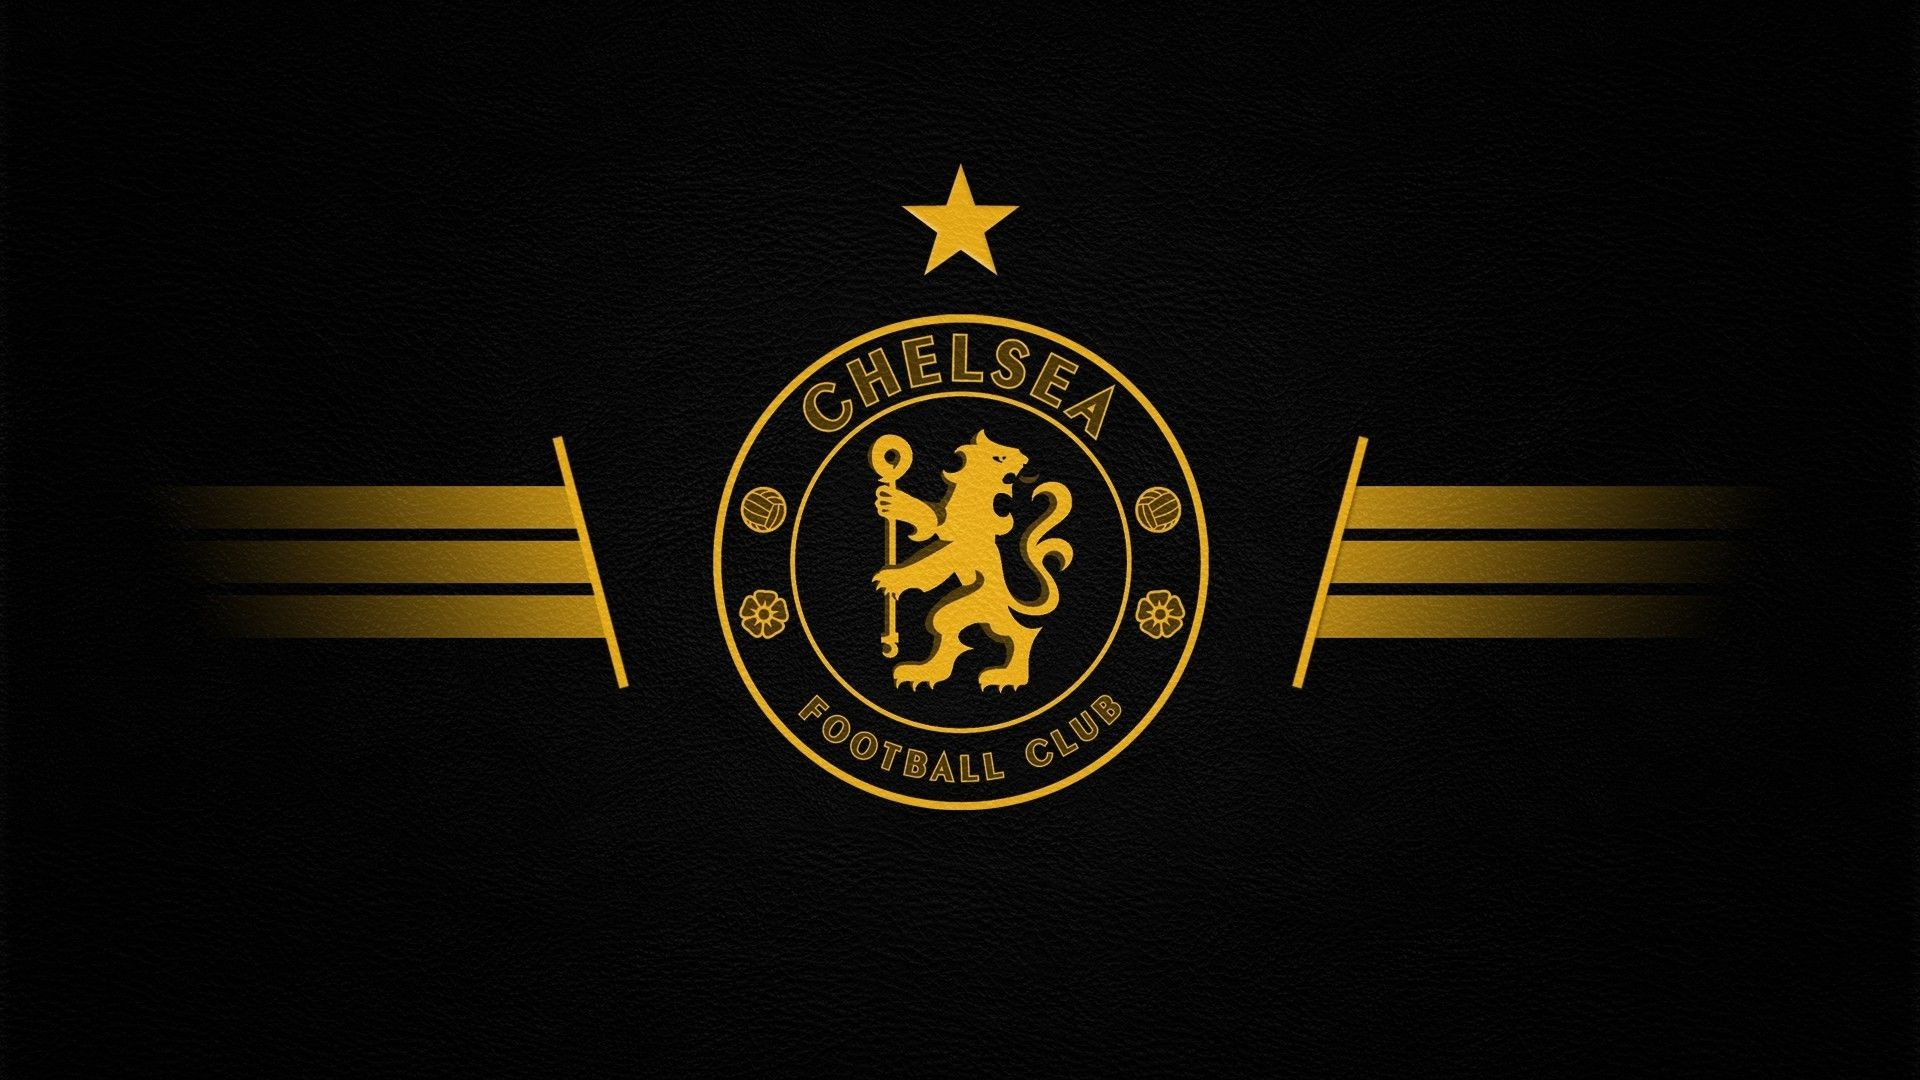 1920x1080  px Chelsea FC Widescreen Image – Awesome Wallpapers, for PC &  Mac, Laptop